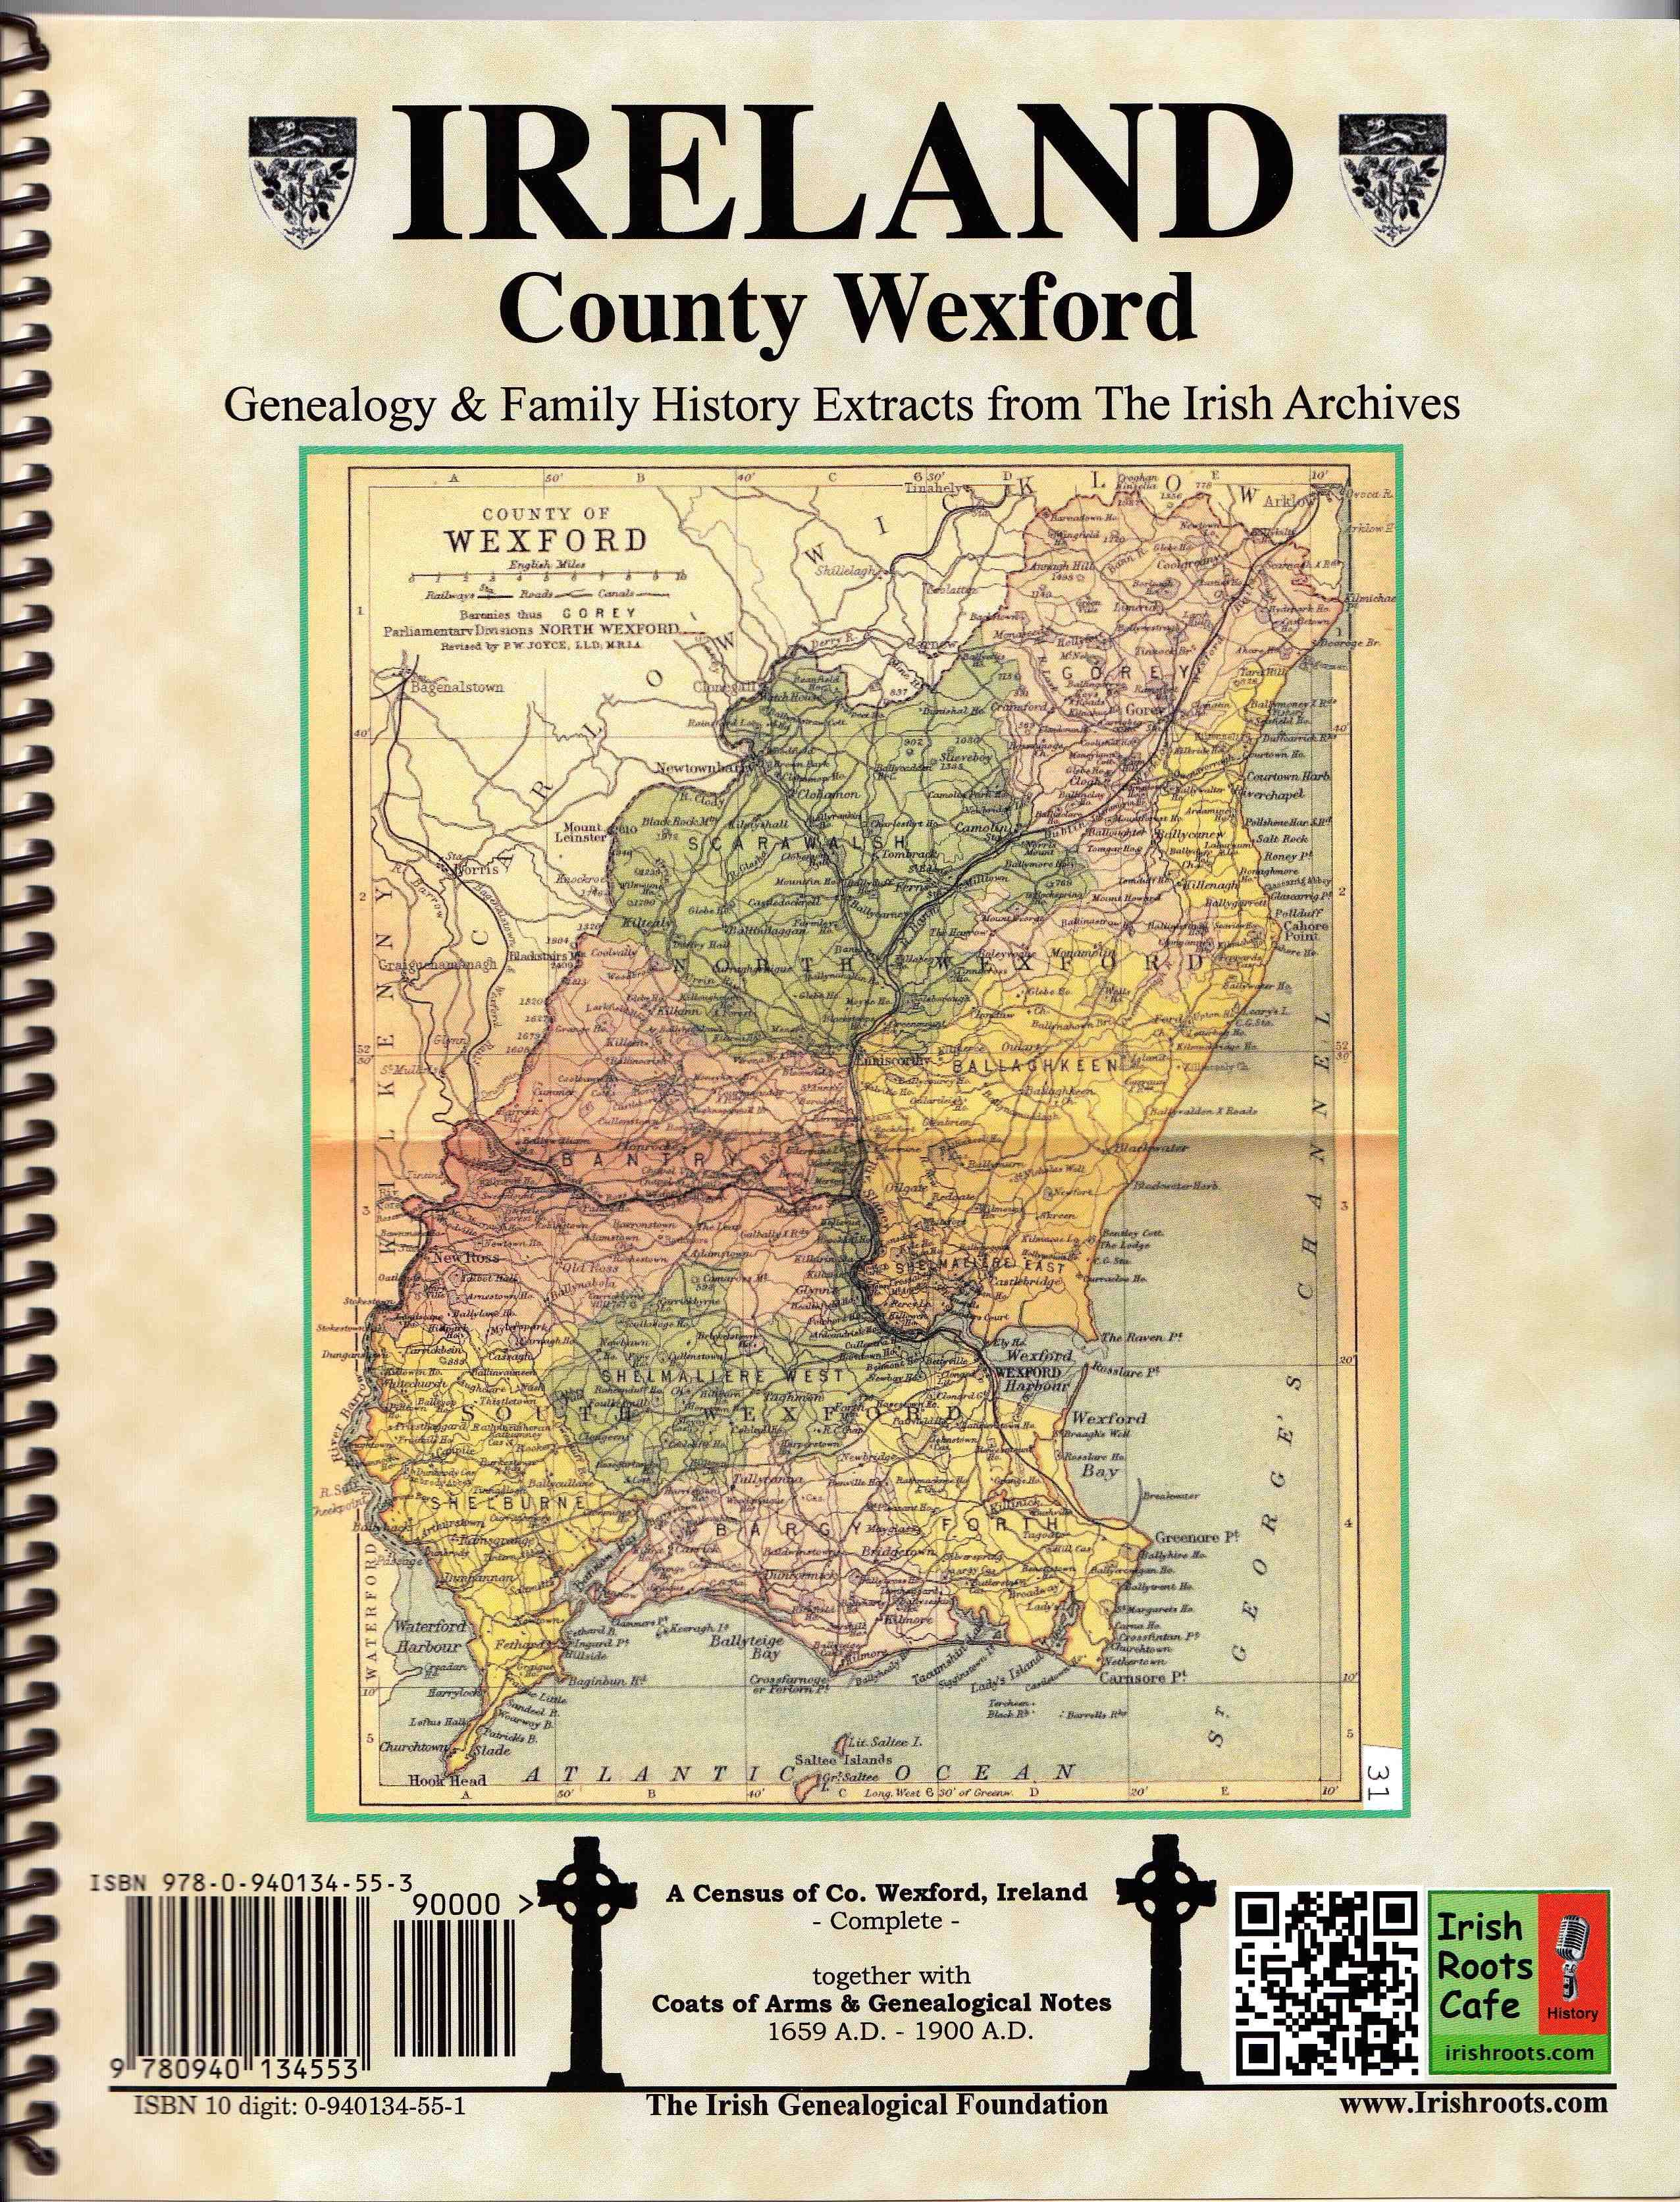 County Wexford Ireland Genealogy And Family History Notes From My